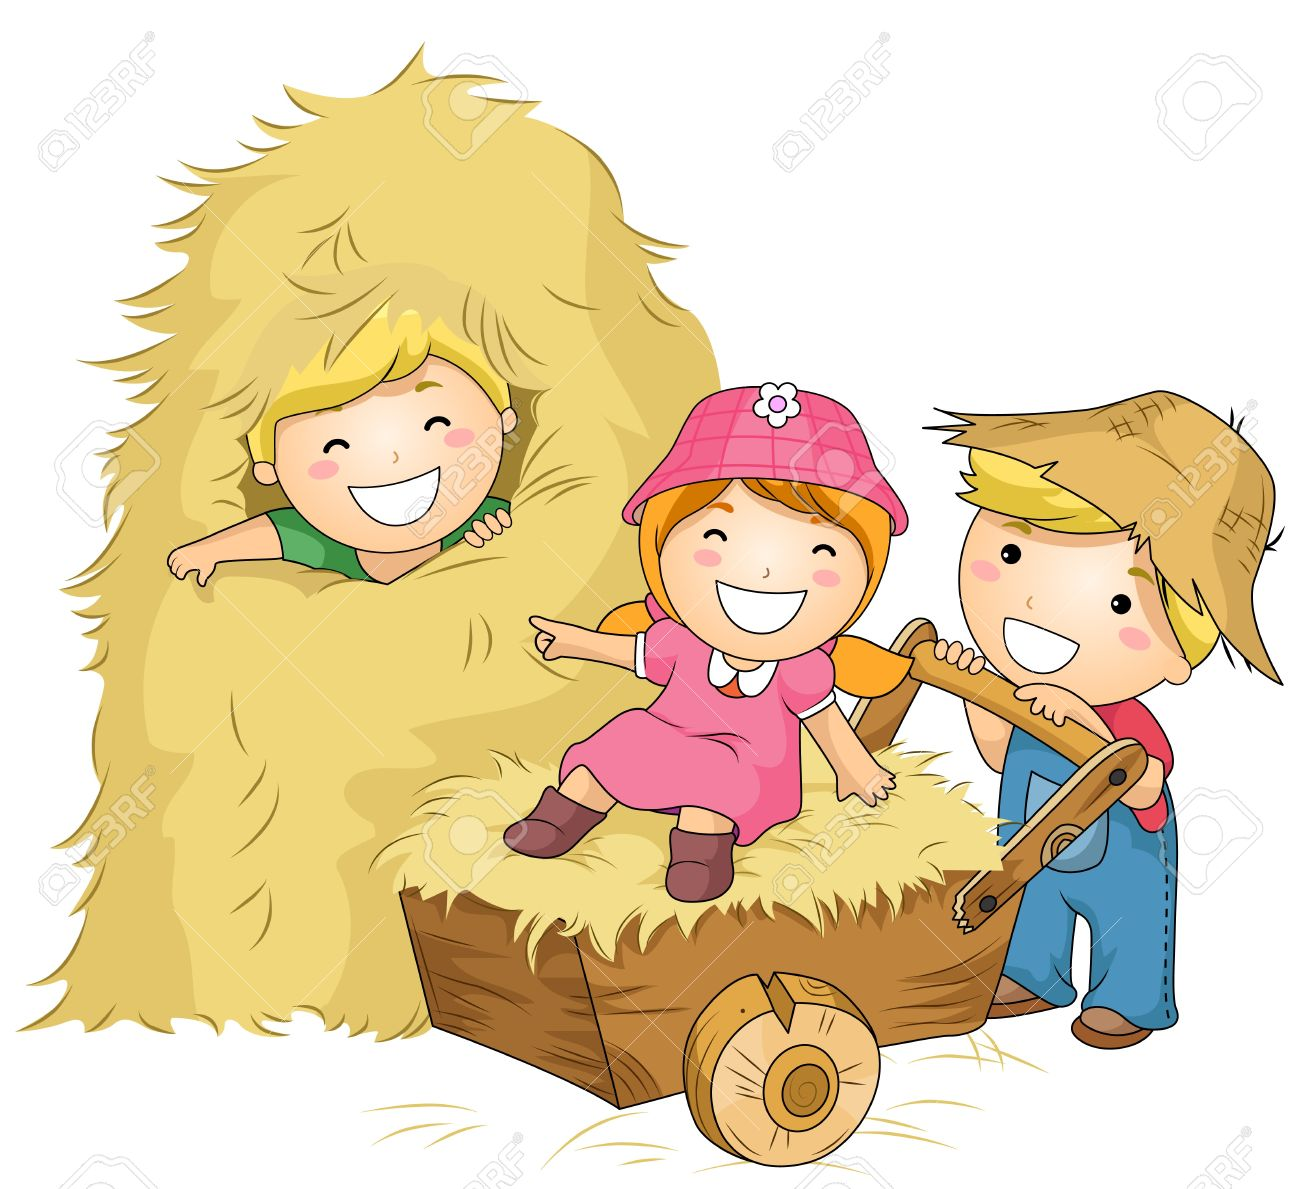 Illustration of Kids Playing with Haystacks and a Wheelbarrow Stock Illustration - 8230123